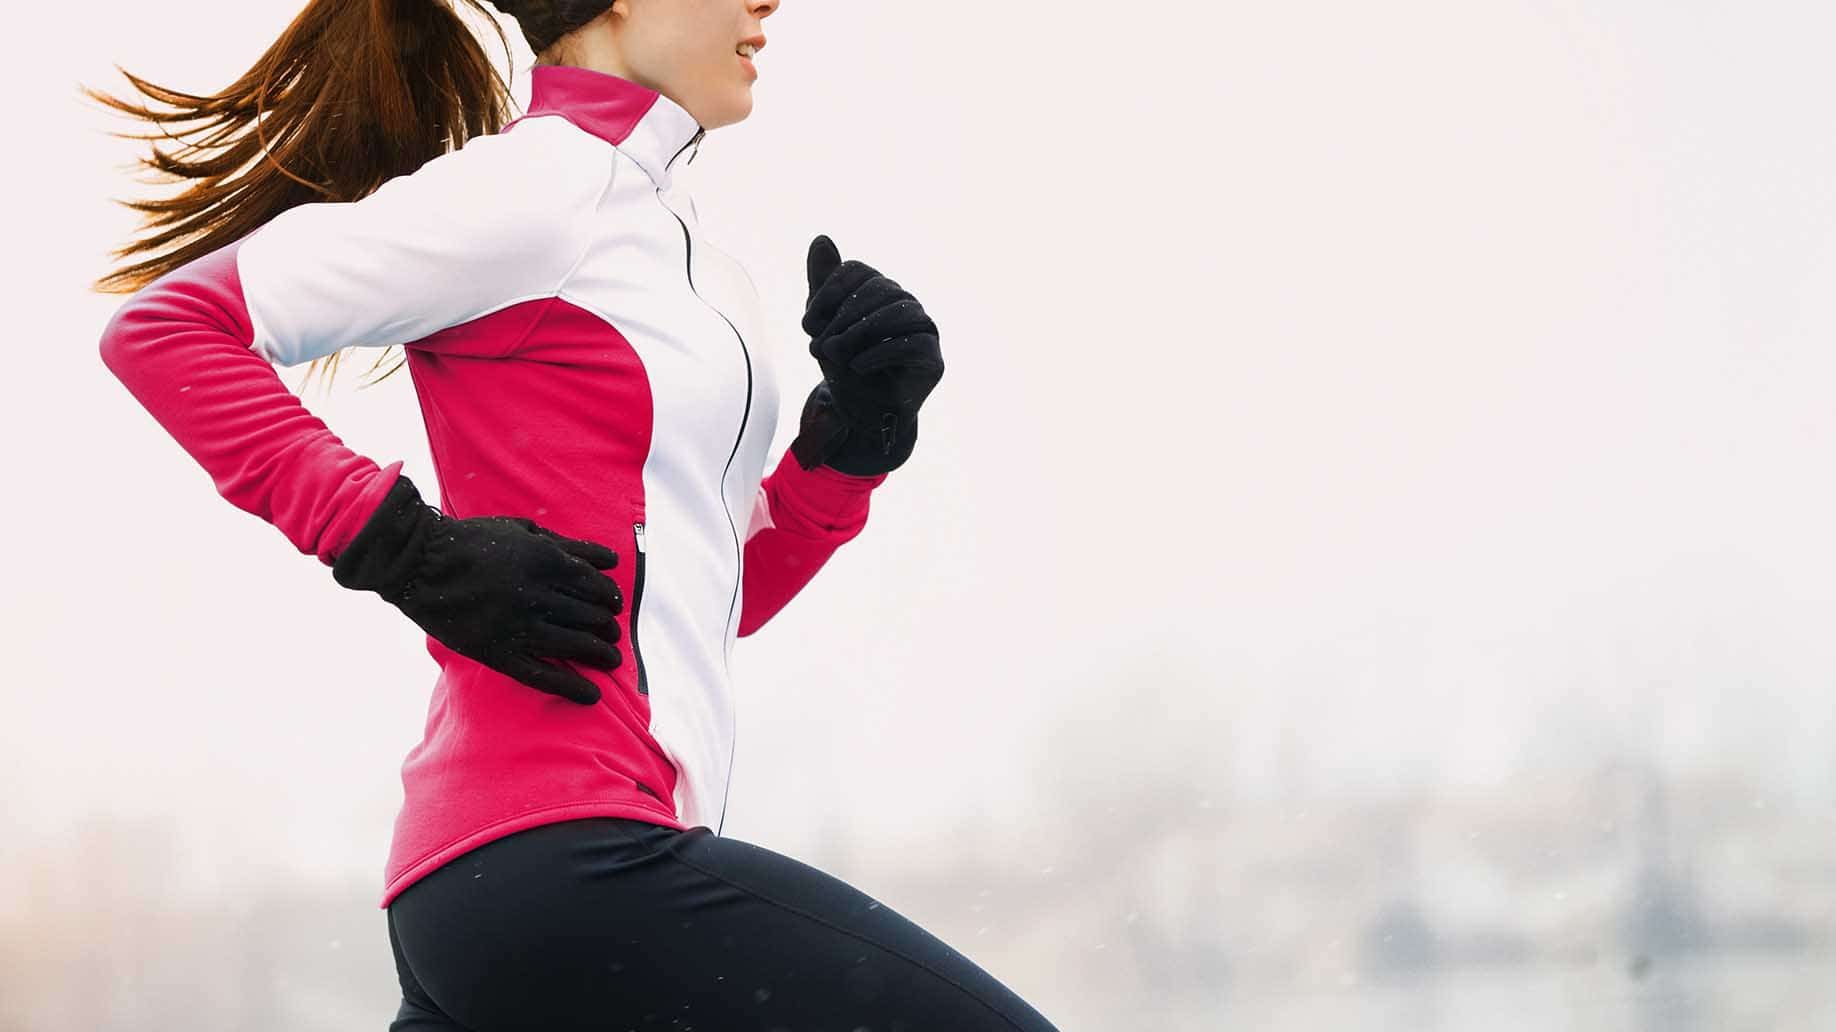 winter running athlete woman on cold